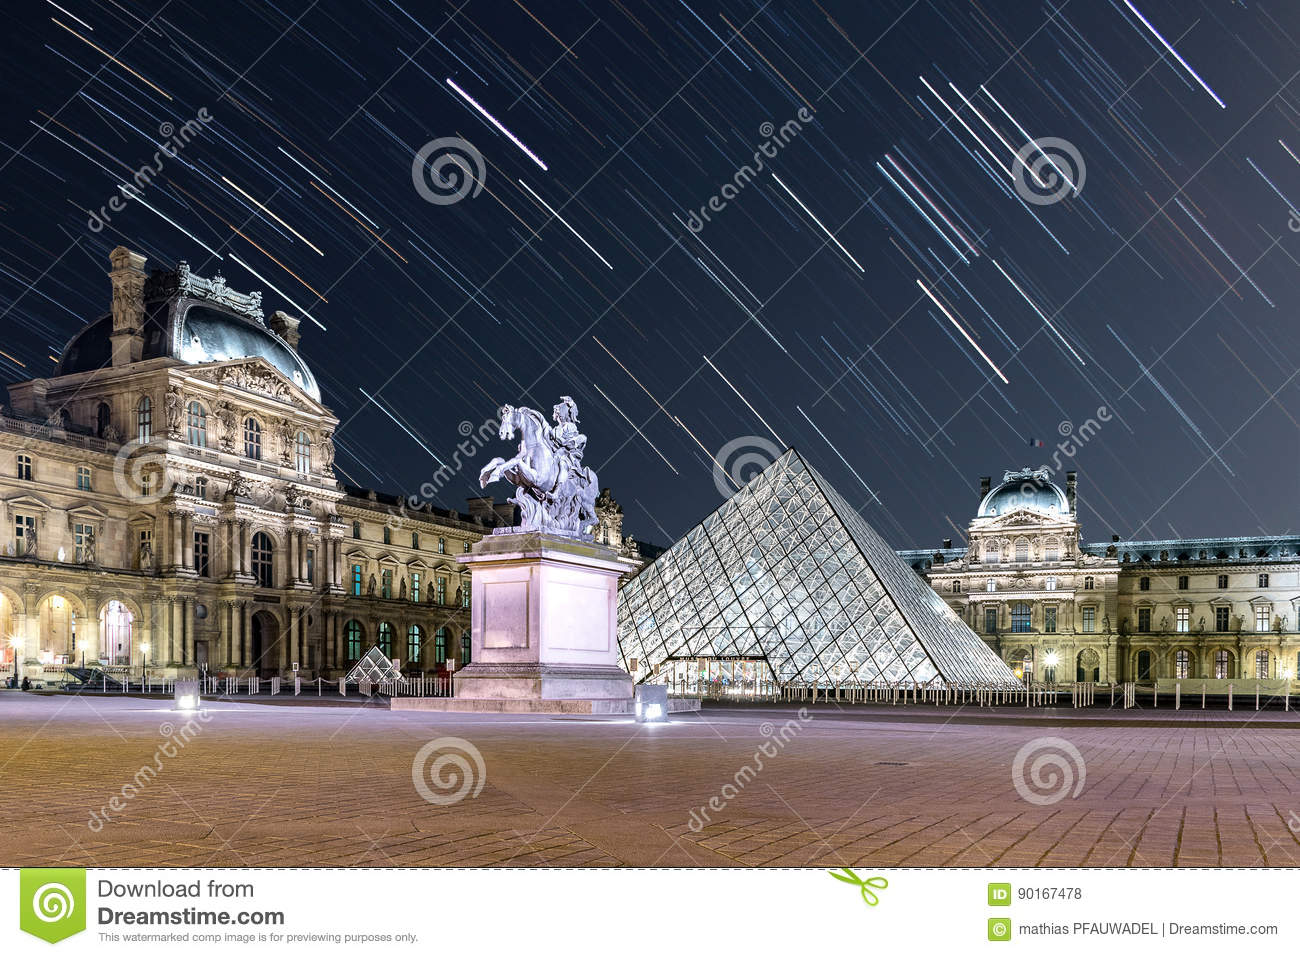 Star Trail at The Louvre